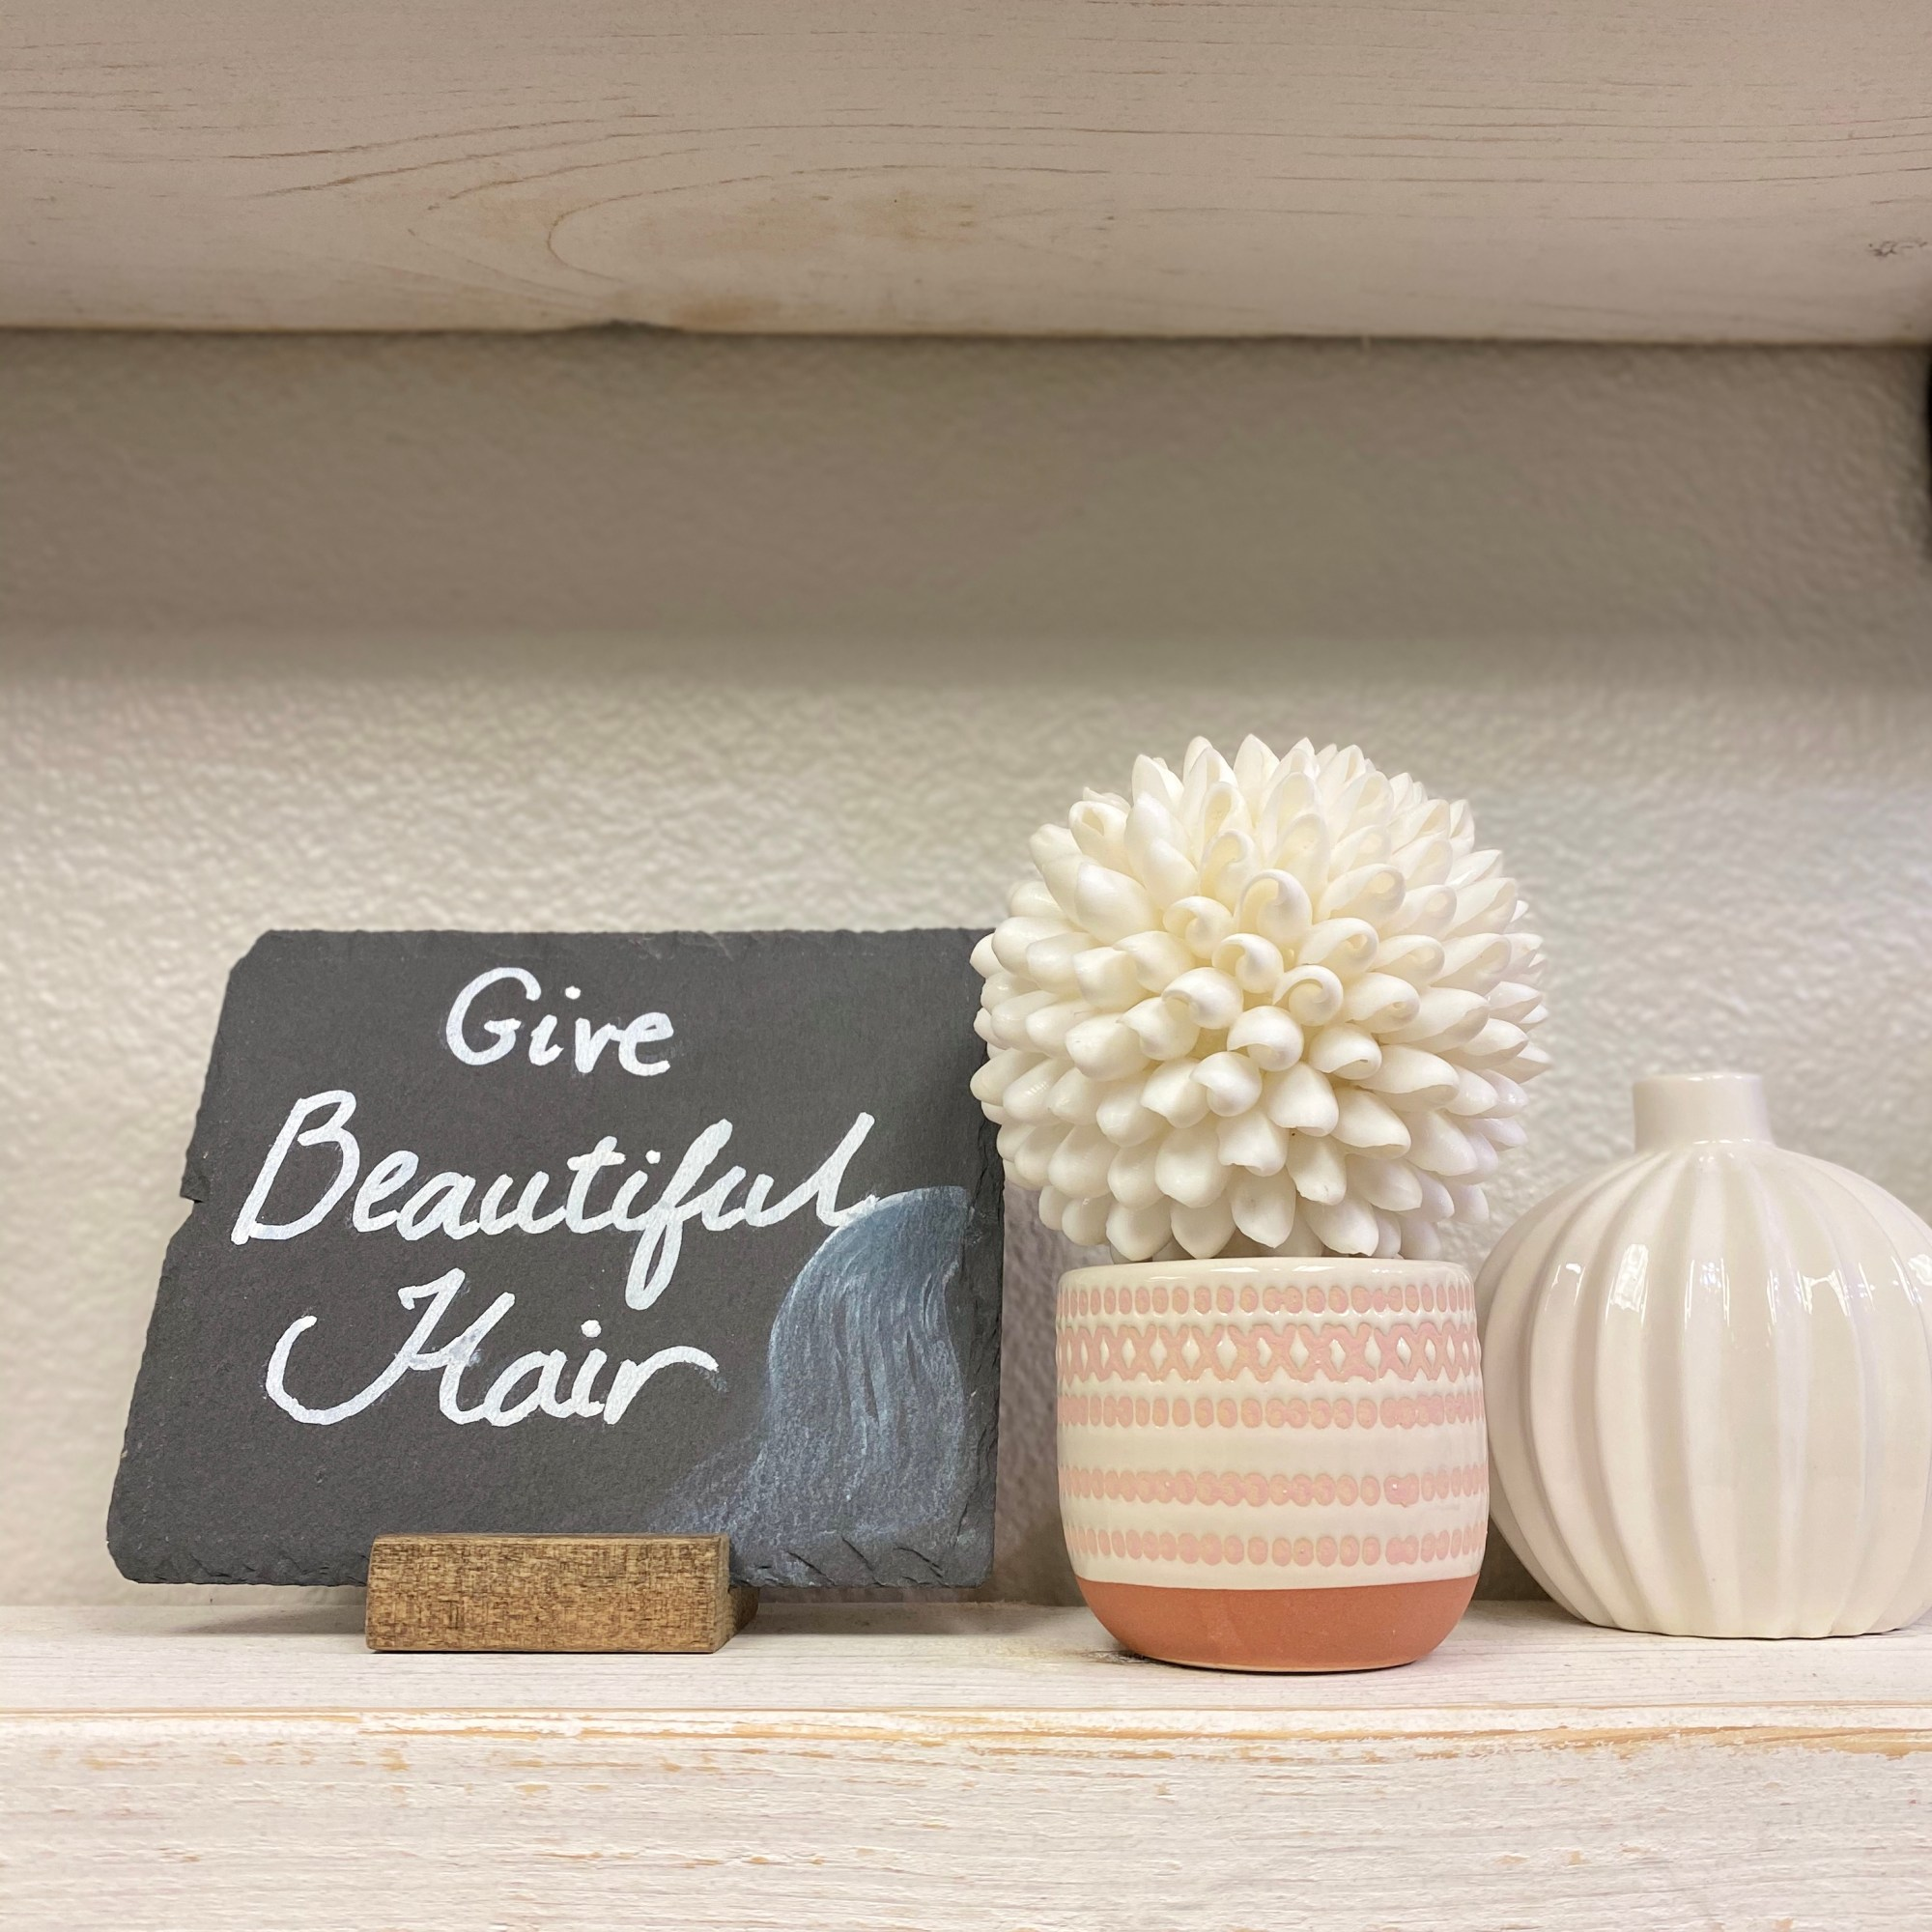 Give beautiful hair plaque on salon shelves